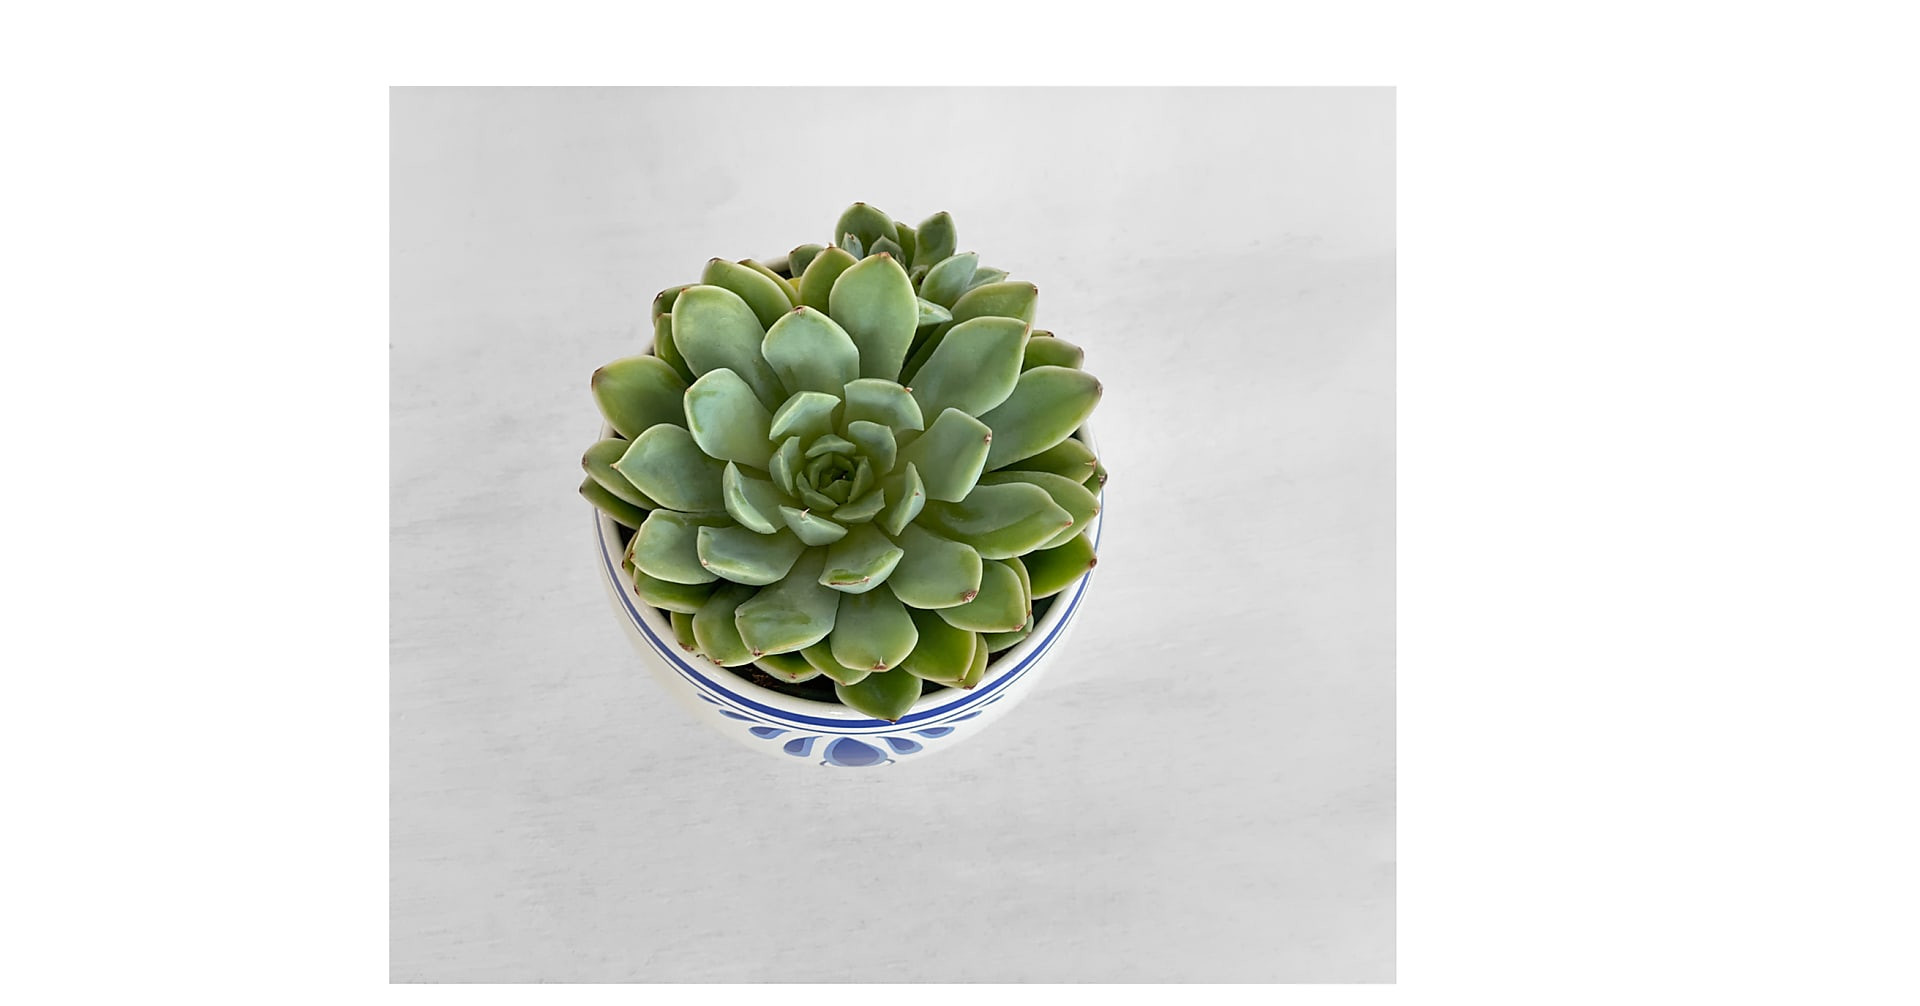 Tranquil Succulent - Image 2 Of 2